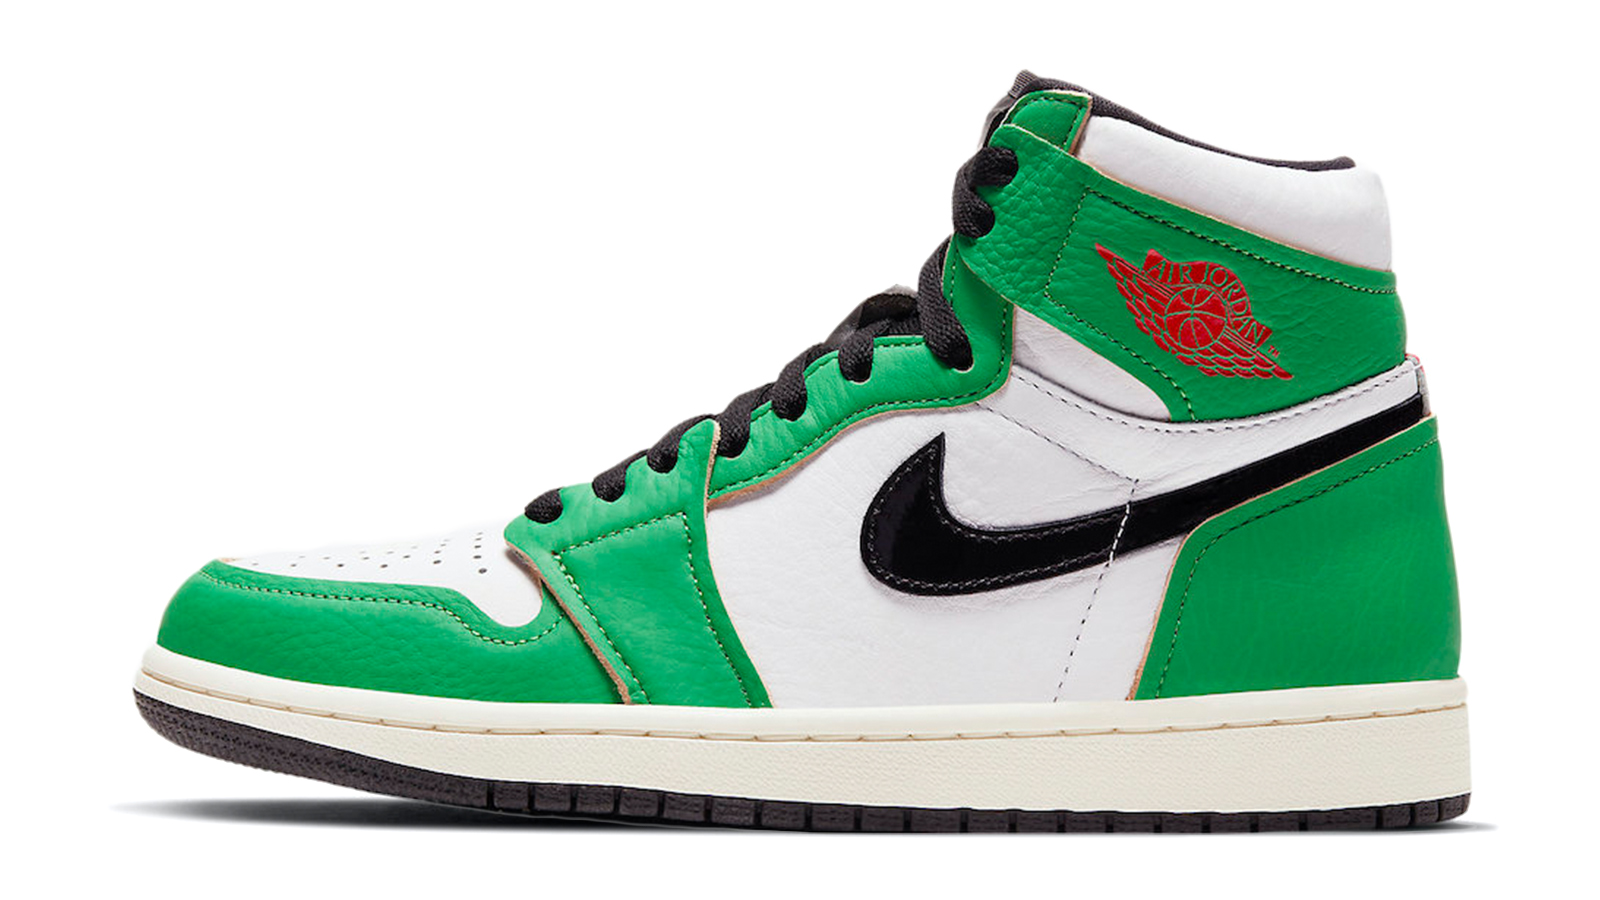 Air Jordan 1 Hi OG Lucky Green DB4612-300